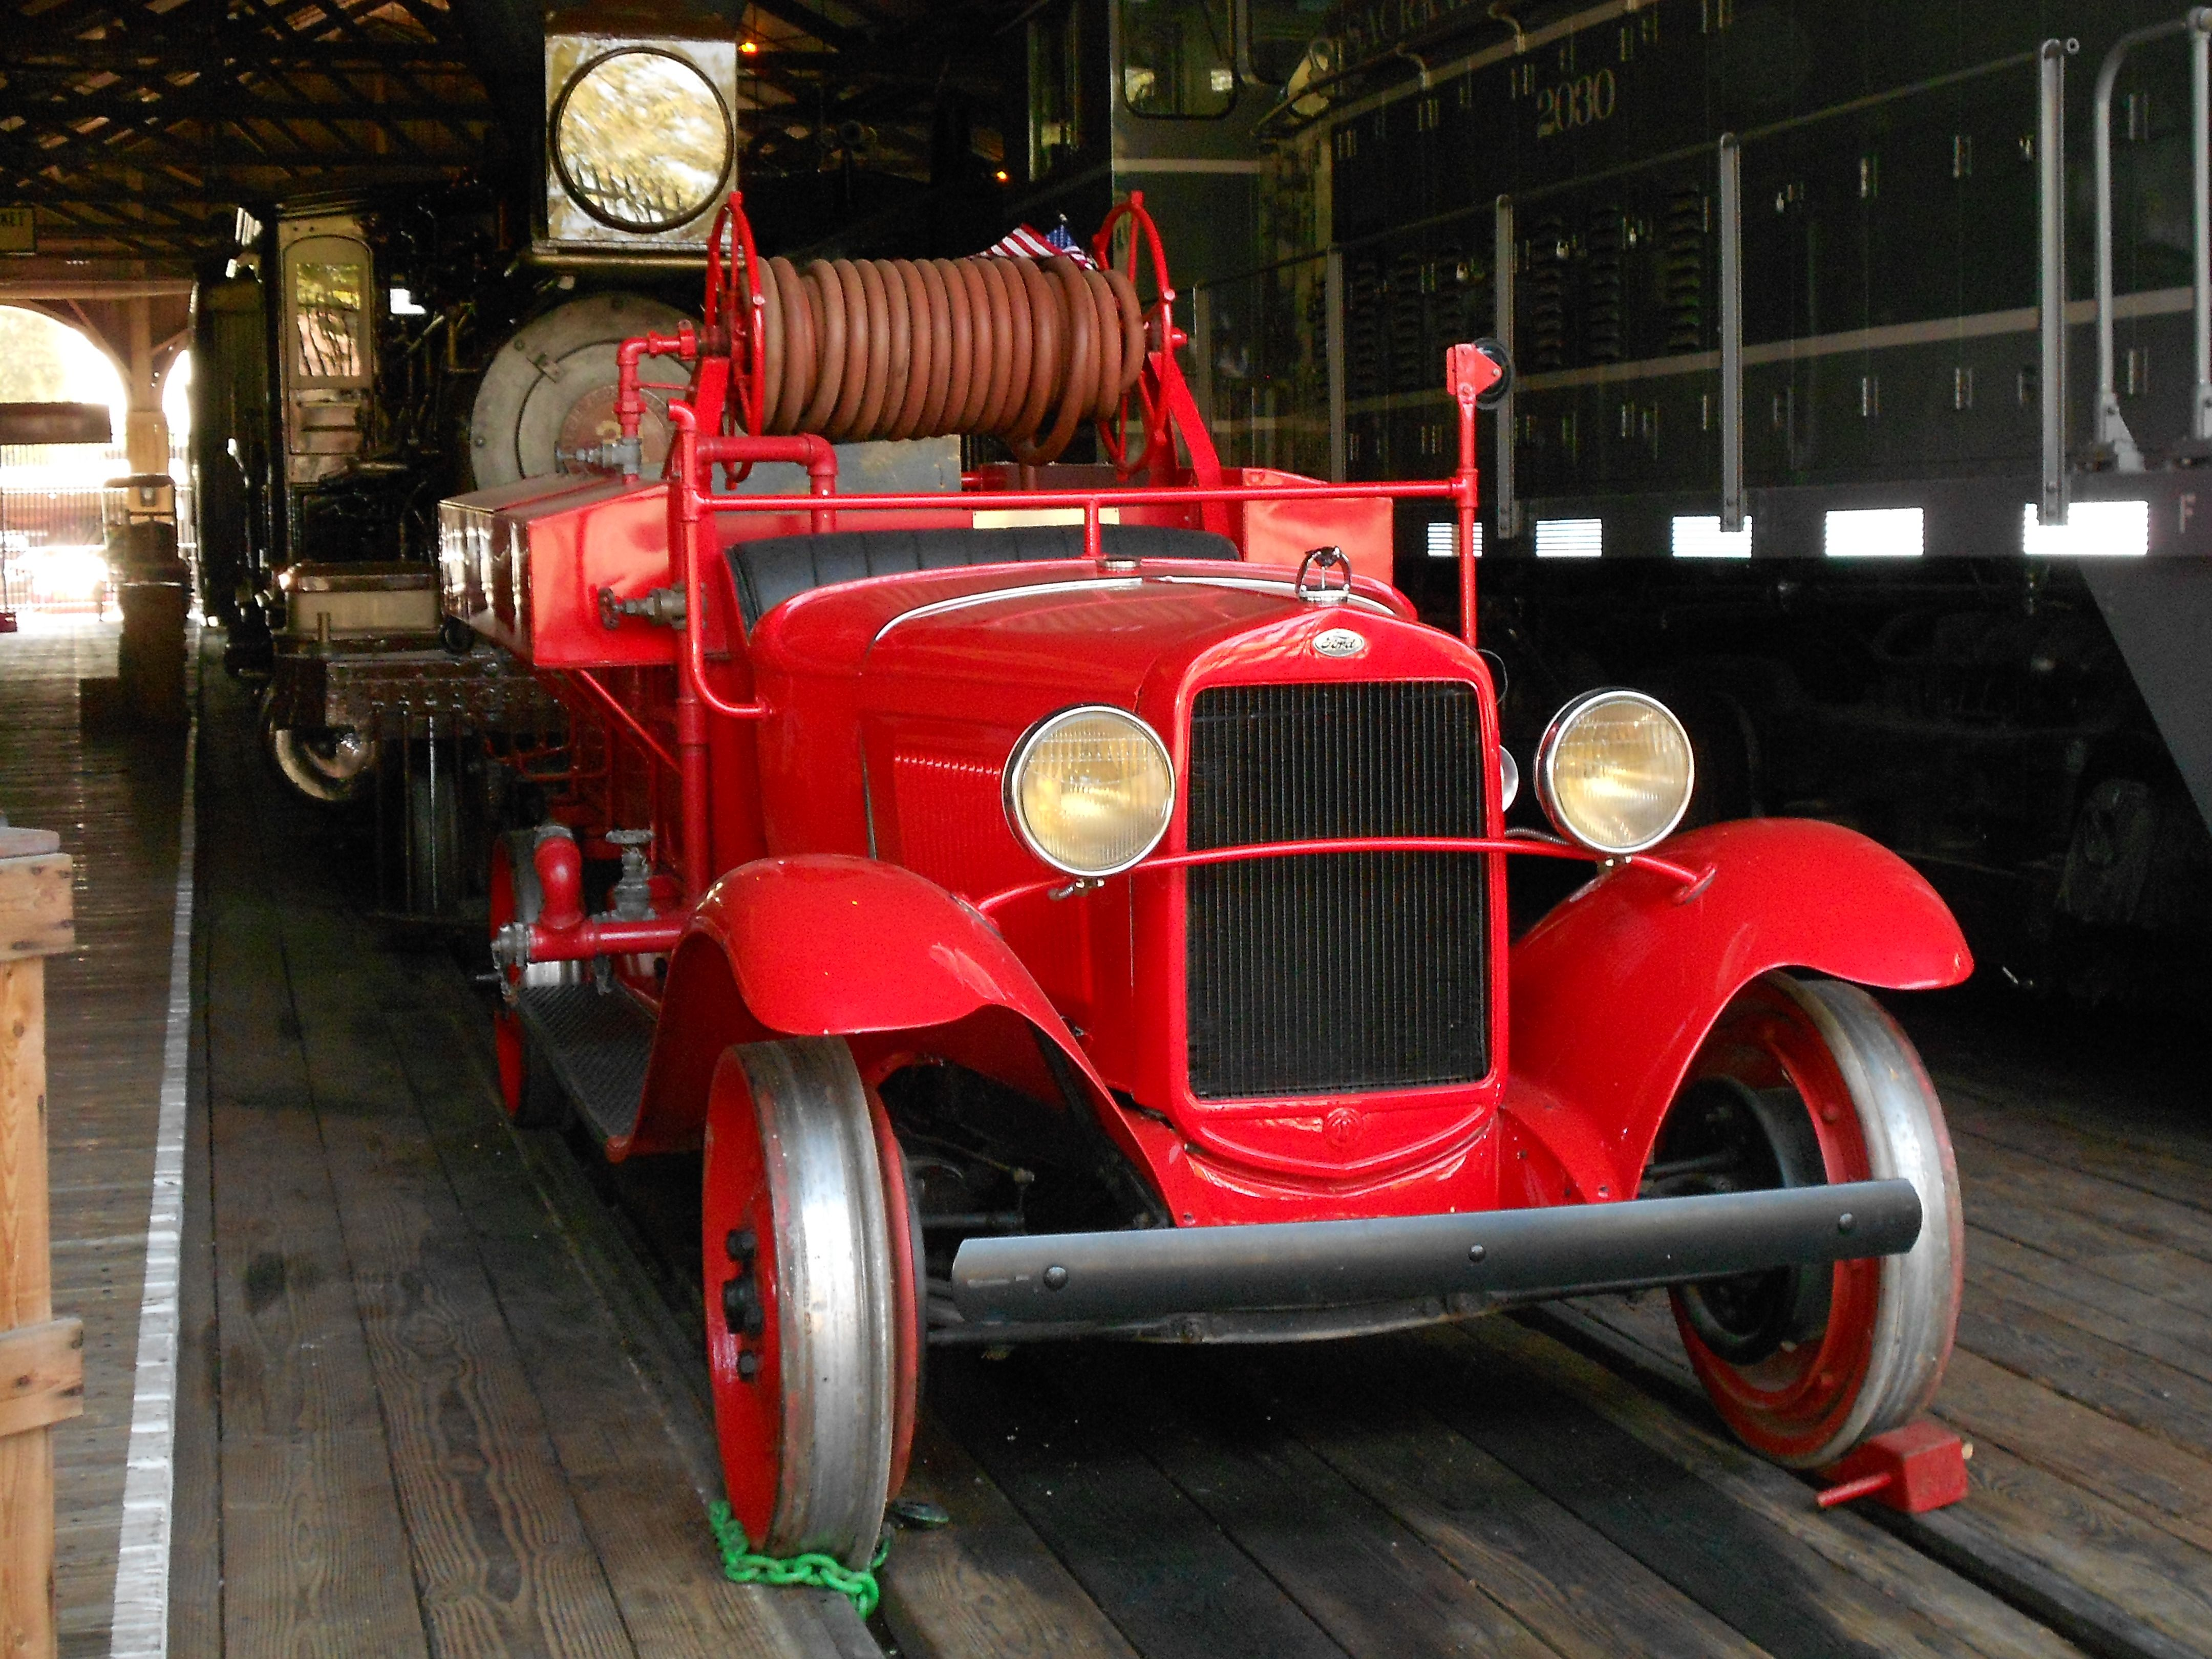 Seagrave Fire Apparatus >> This Is A 1930 Ford Model A AA Railroad Fire Truck At The ...